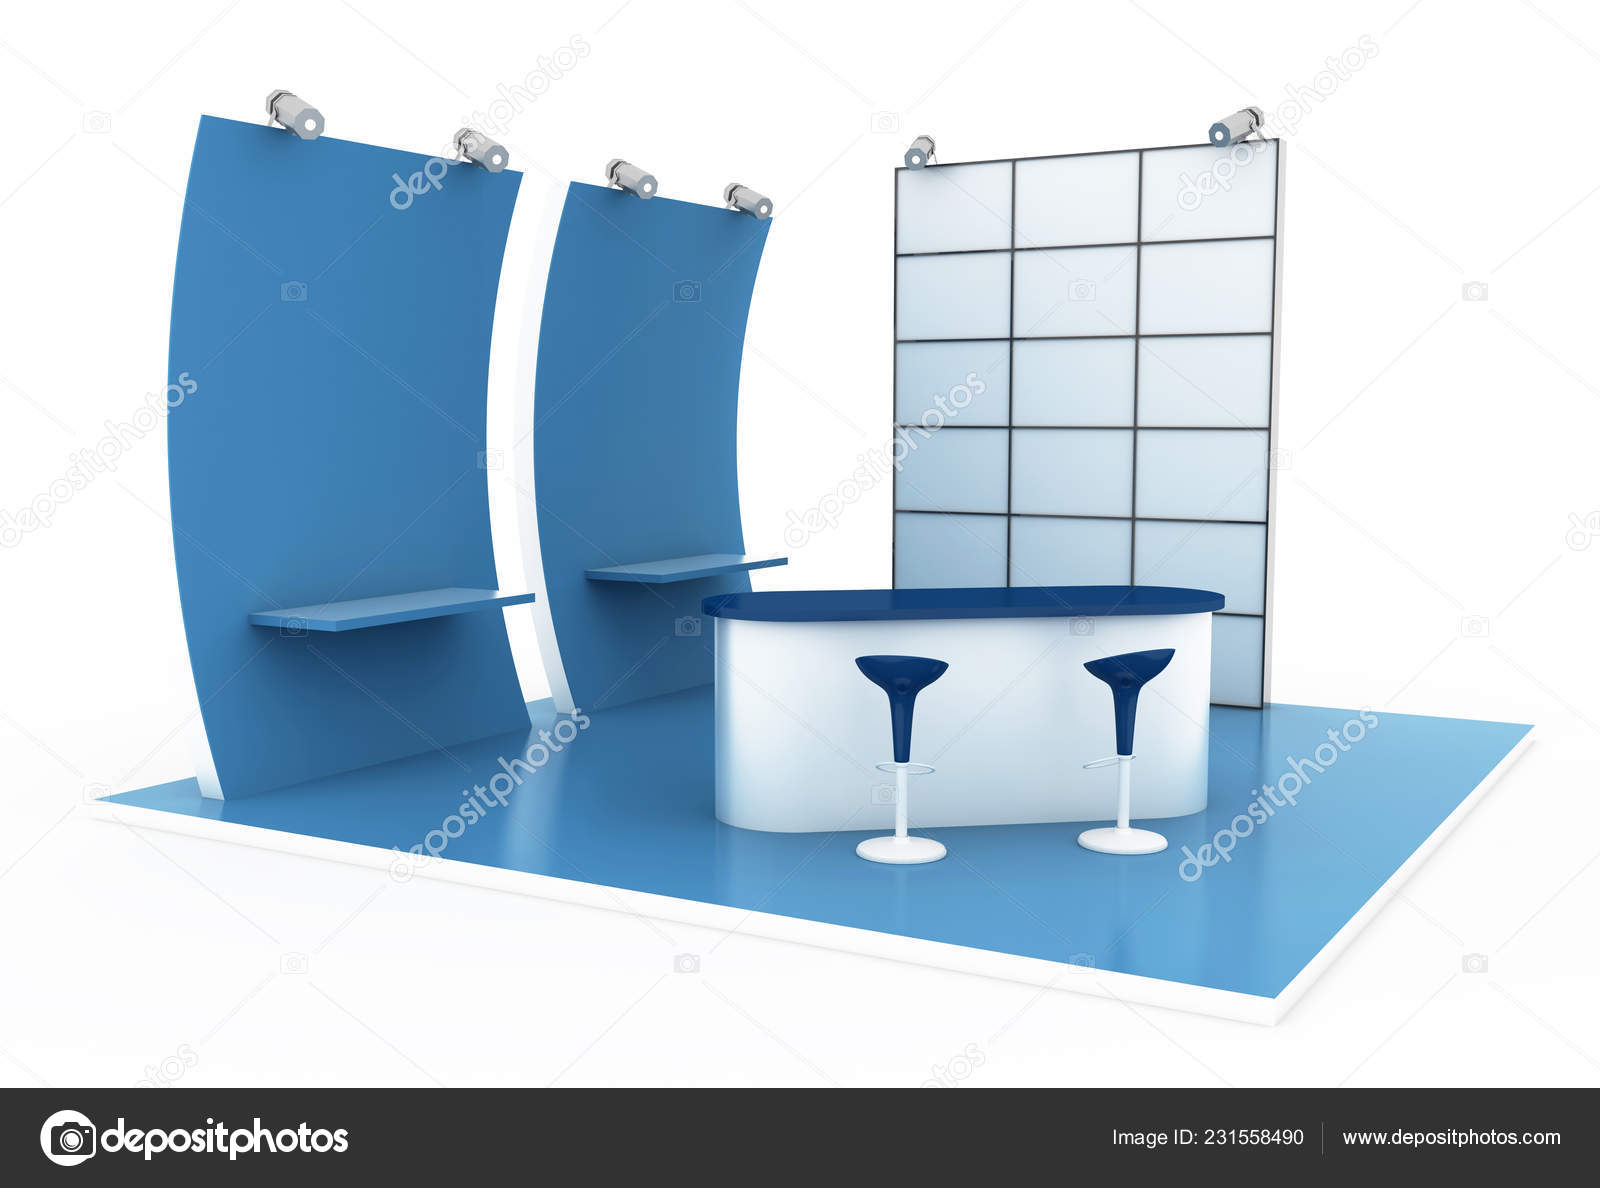 Exhibition Stand 3d Model Free Download : Exhibition stand white original rendering models u stock photo